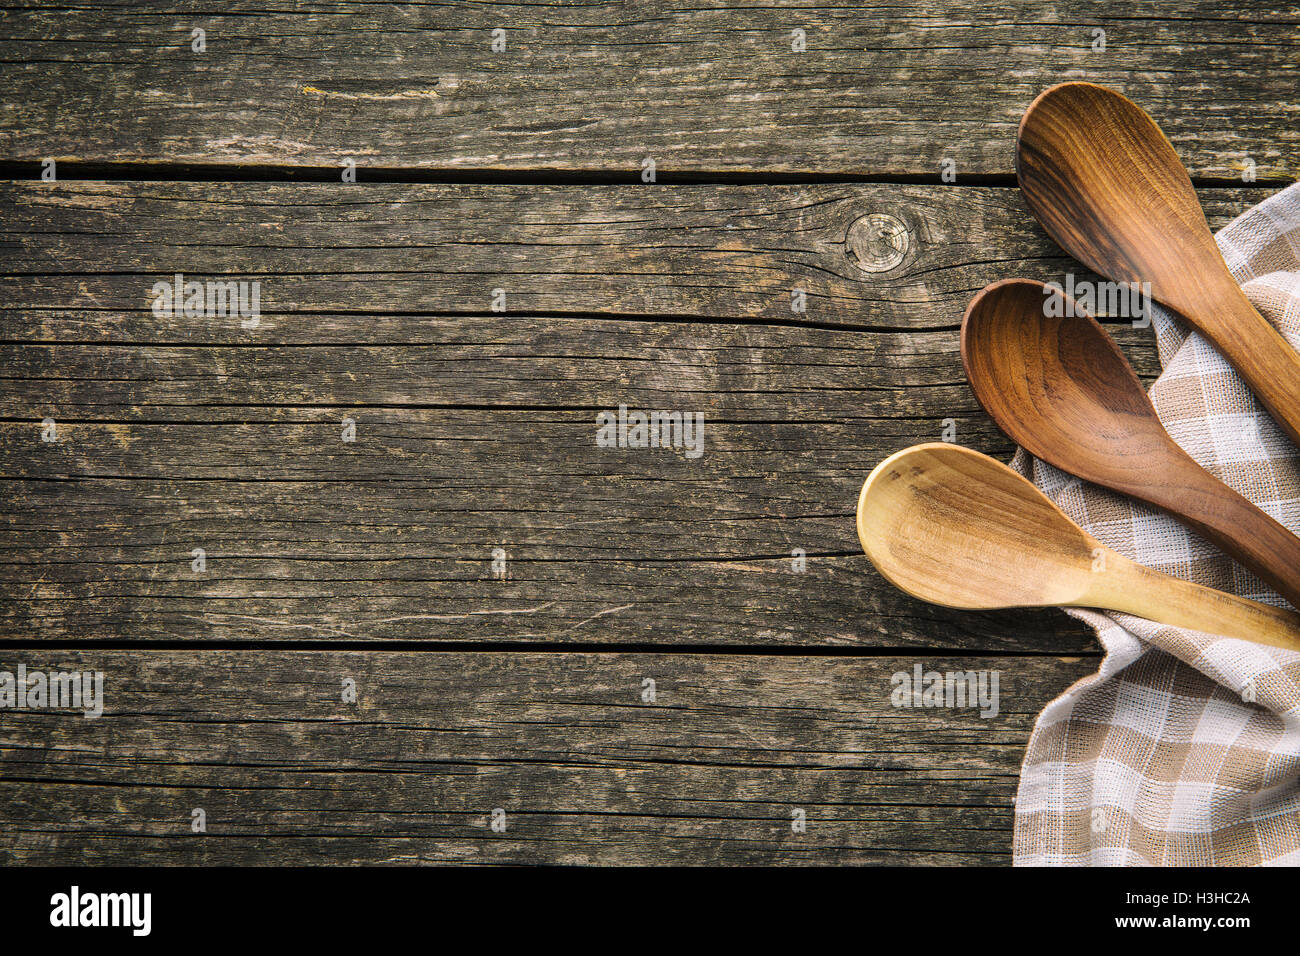 Handmade wooden spoons on old wooden table. Top view. - Stock Image